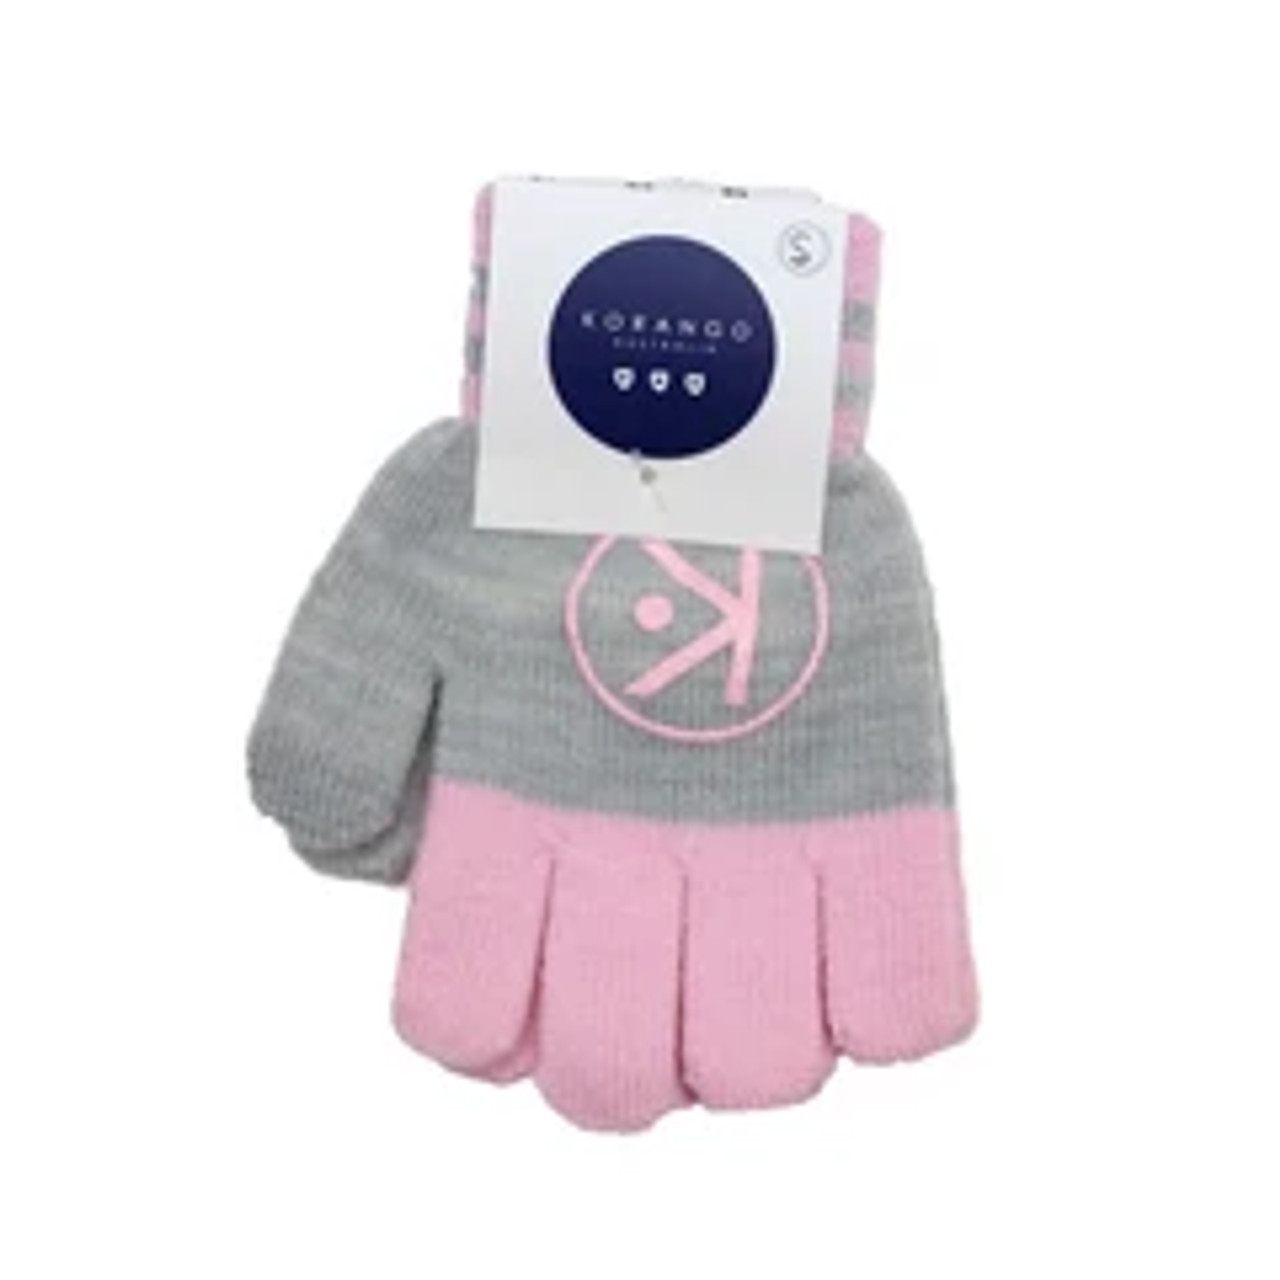 Korango Essential Gloves Pink/Grey at Baby Barn Discounts Soft and cosy to keep little fingers warm. These gloves by Korango are the perfect winter accessory for your little one.